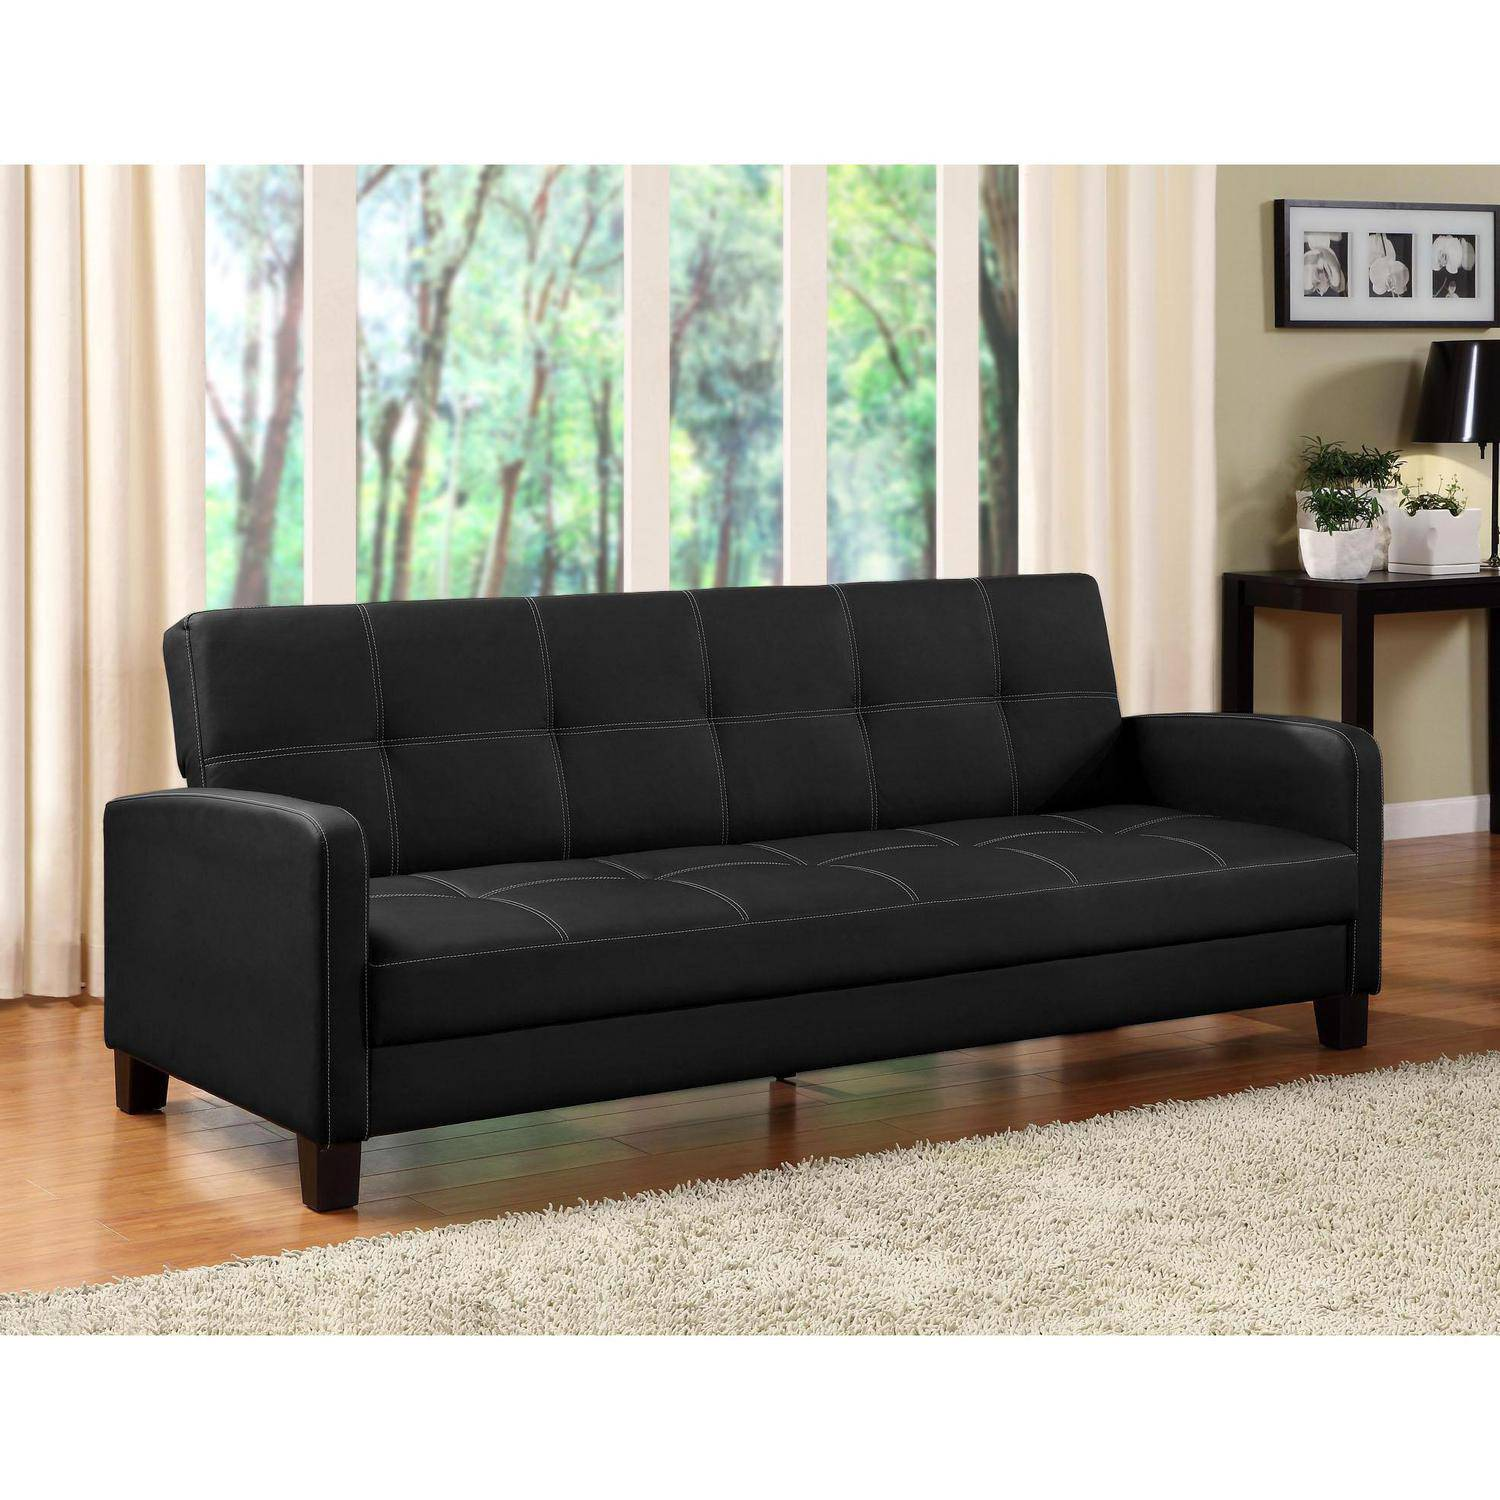 DHP Delaney Futon Couch Sofa Sleeper Multiple Colors Walmartcom